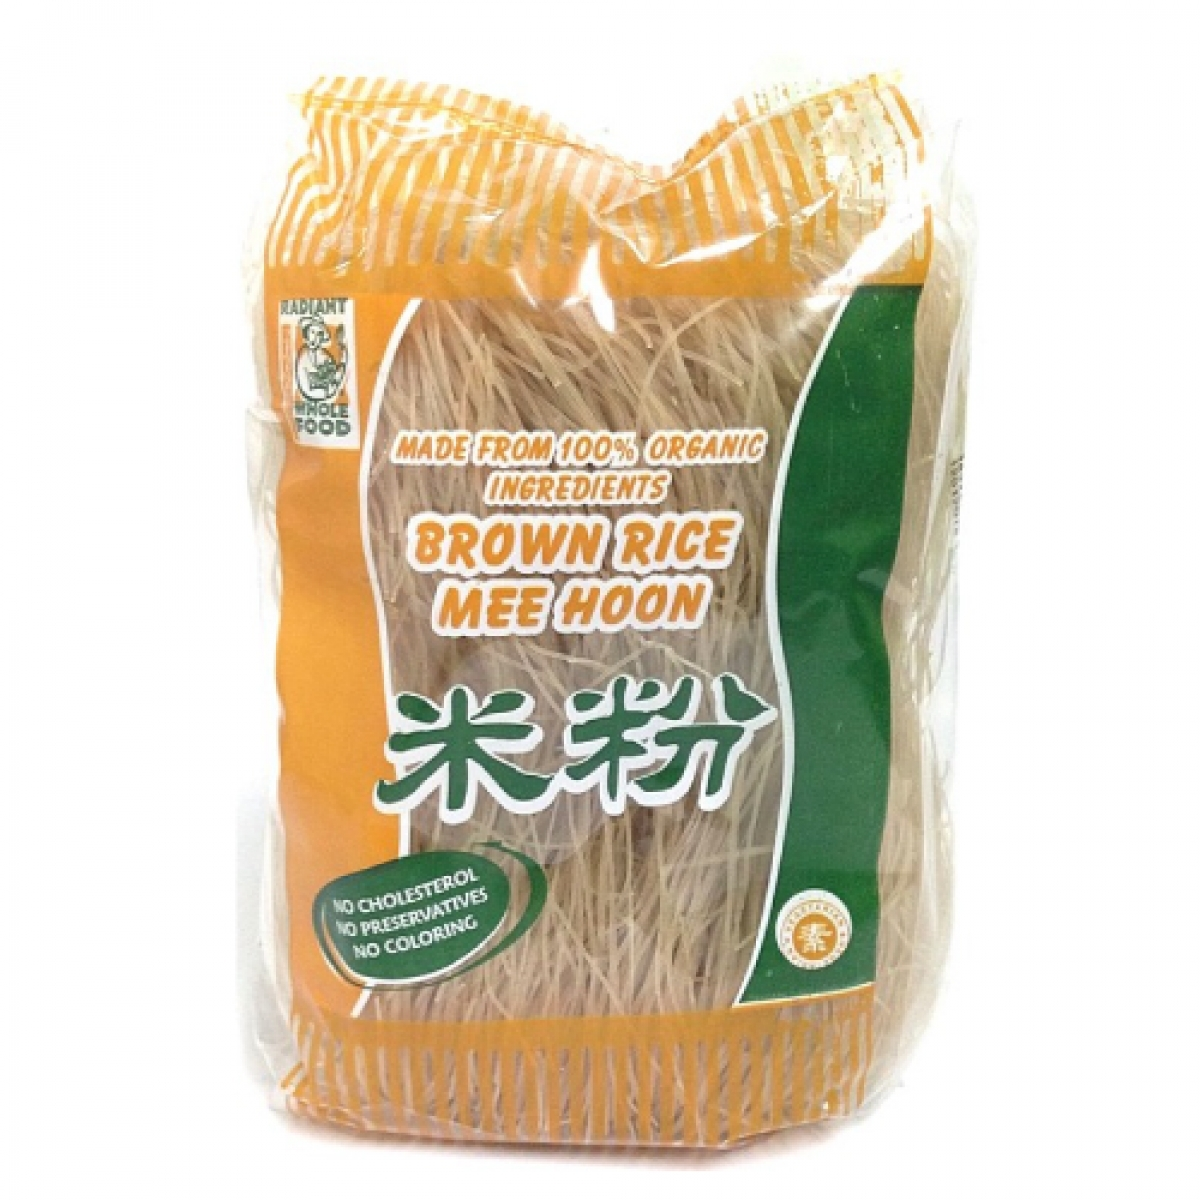 Radiant Organic Brown Rice Meehoon (400g)